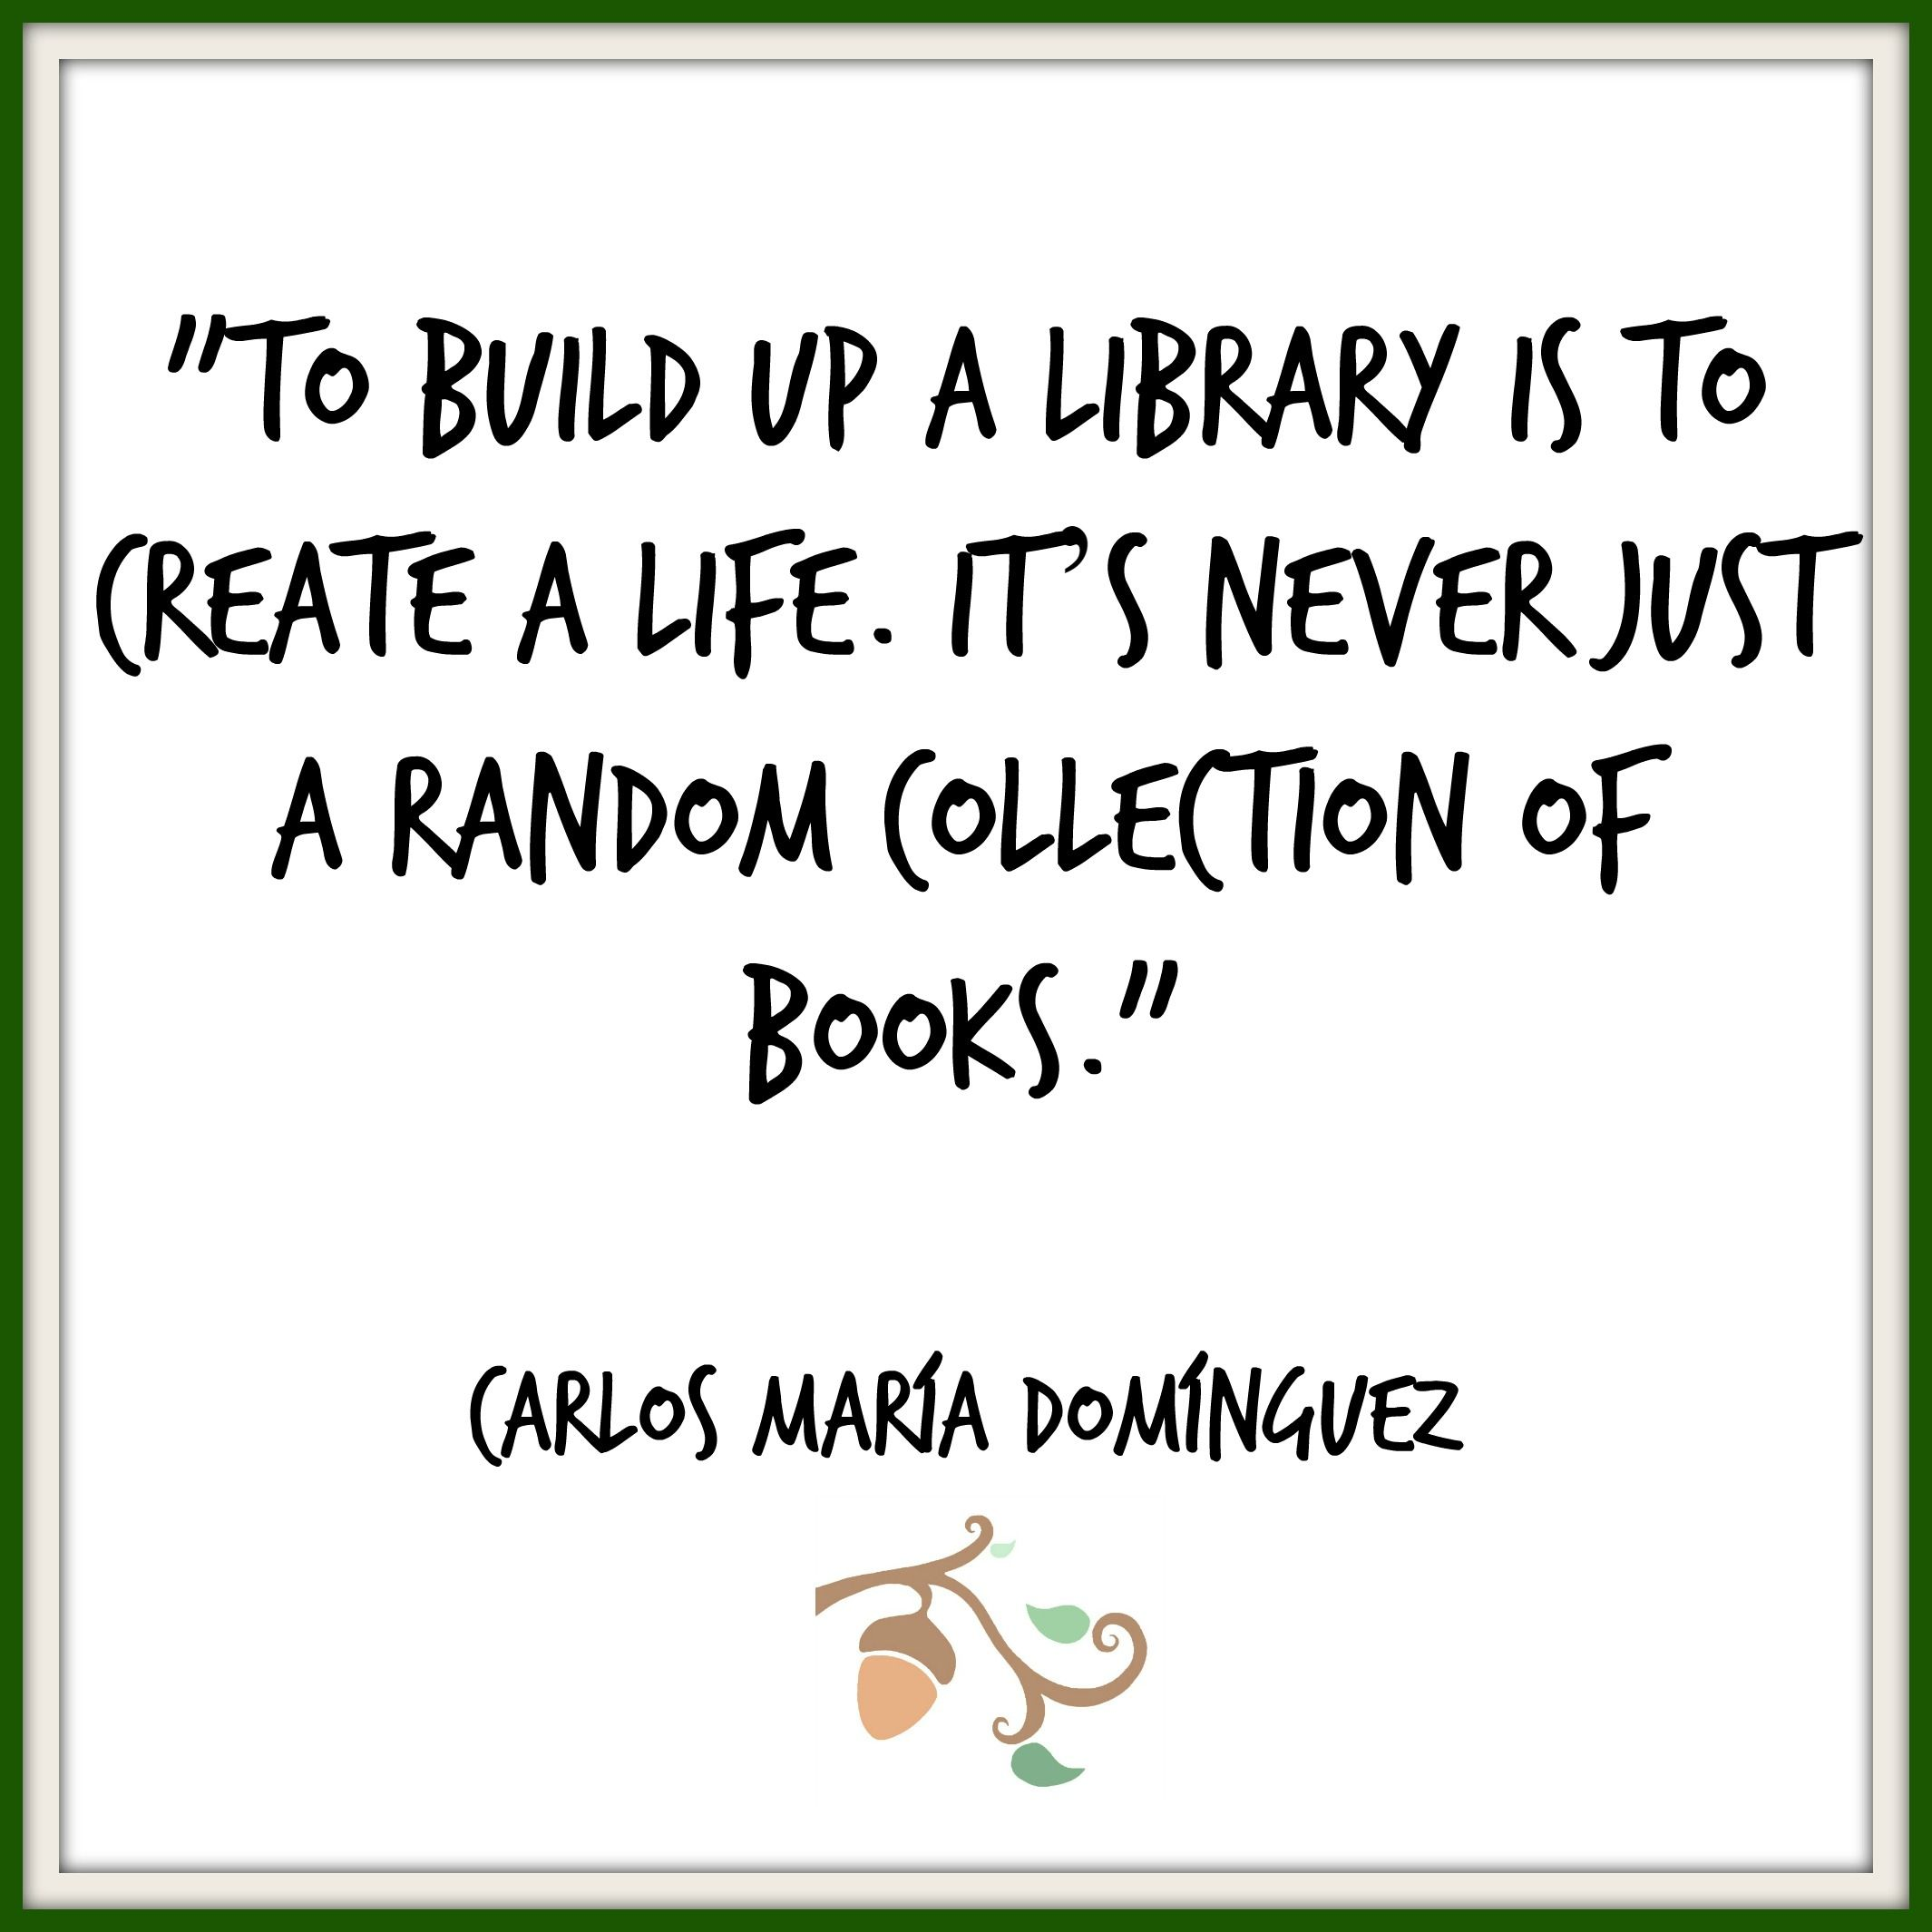 Carlos María Domínguez — To build up a library is to create a life. It's never just a random collection of books.